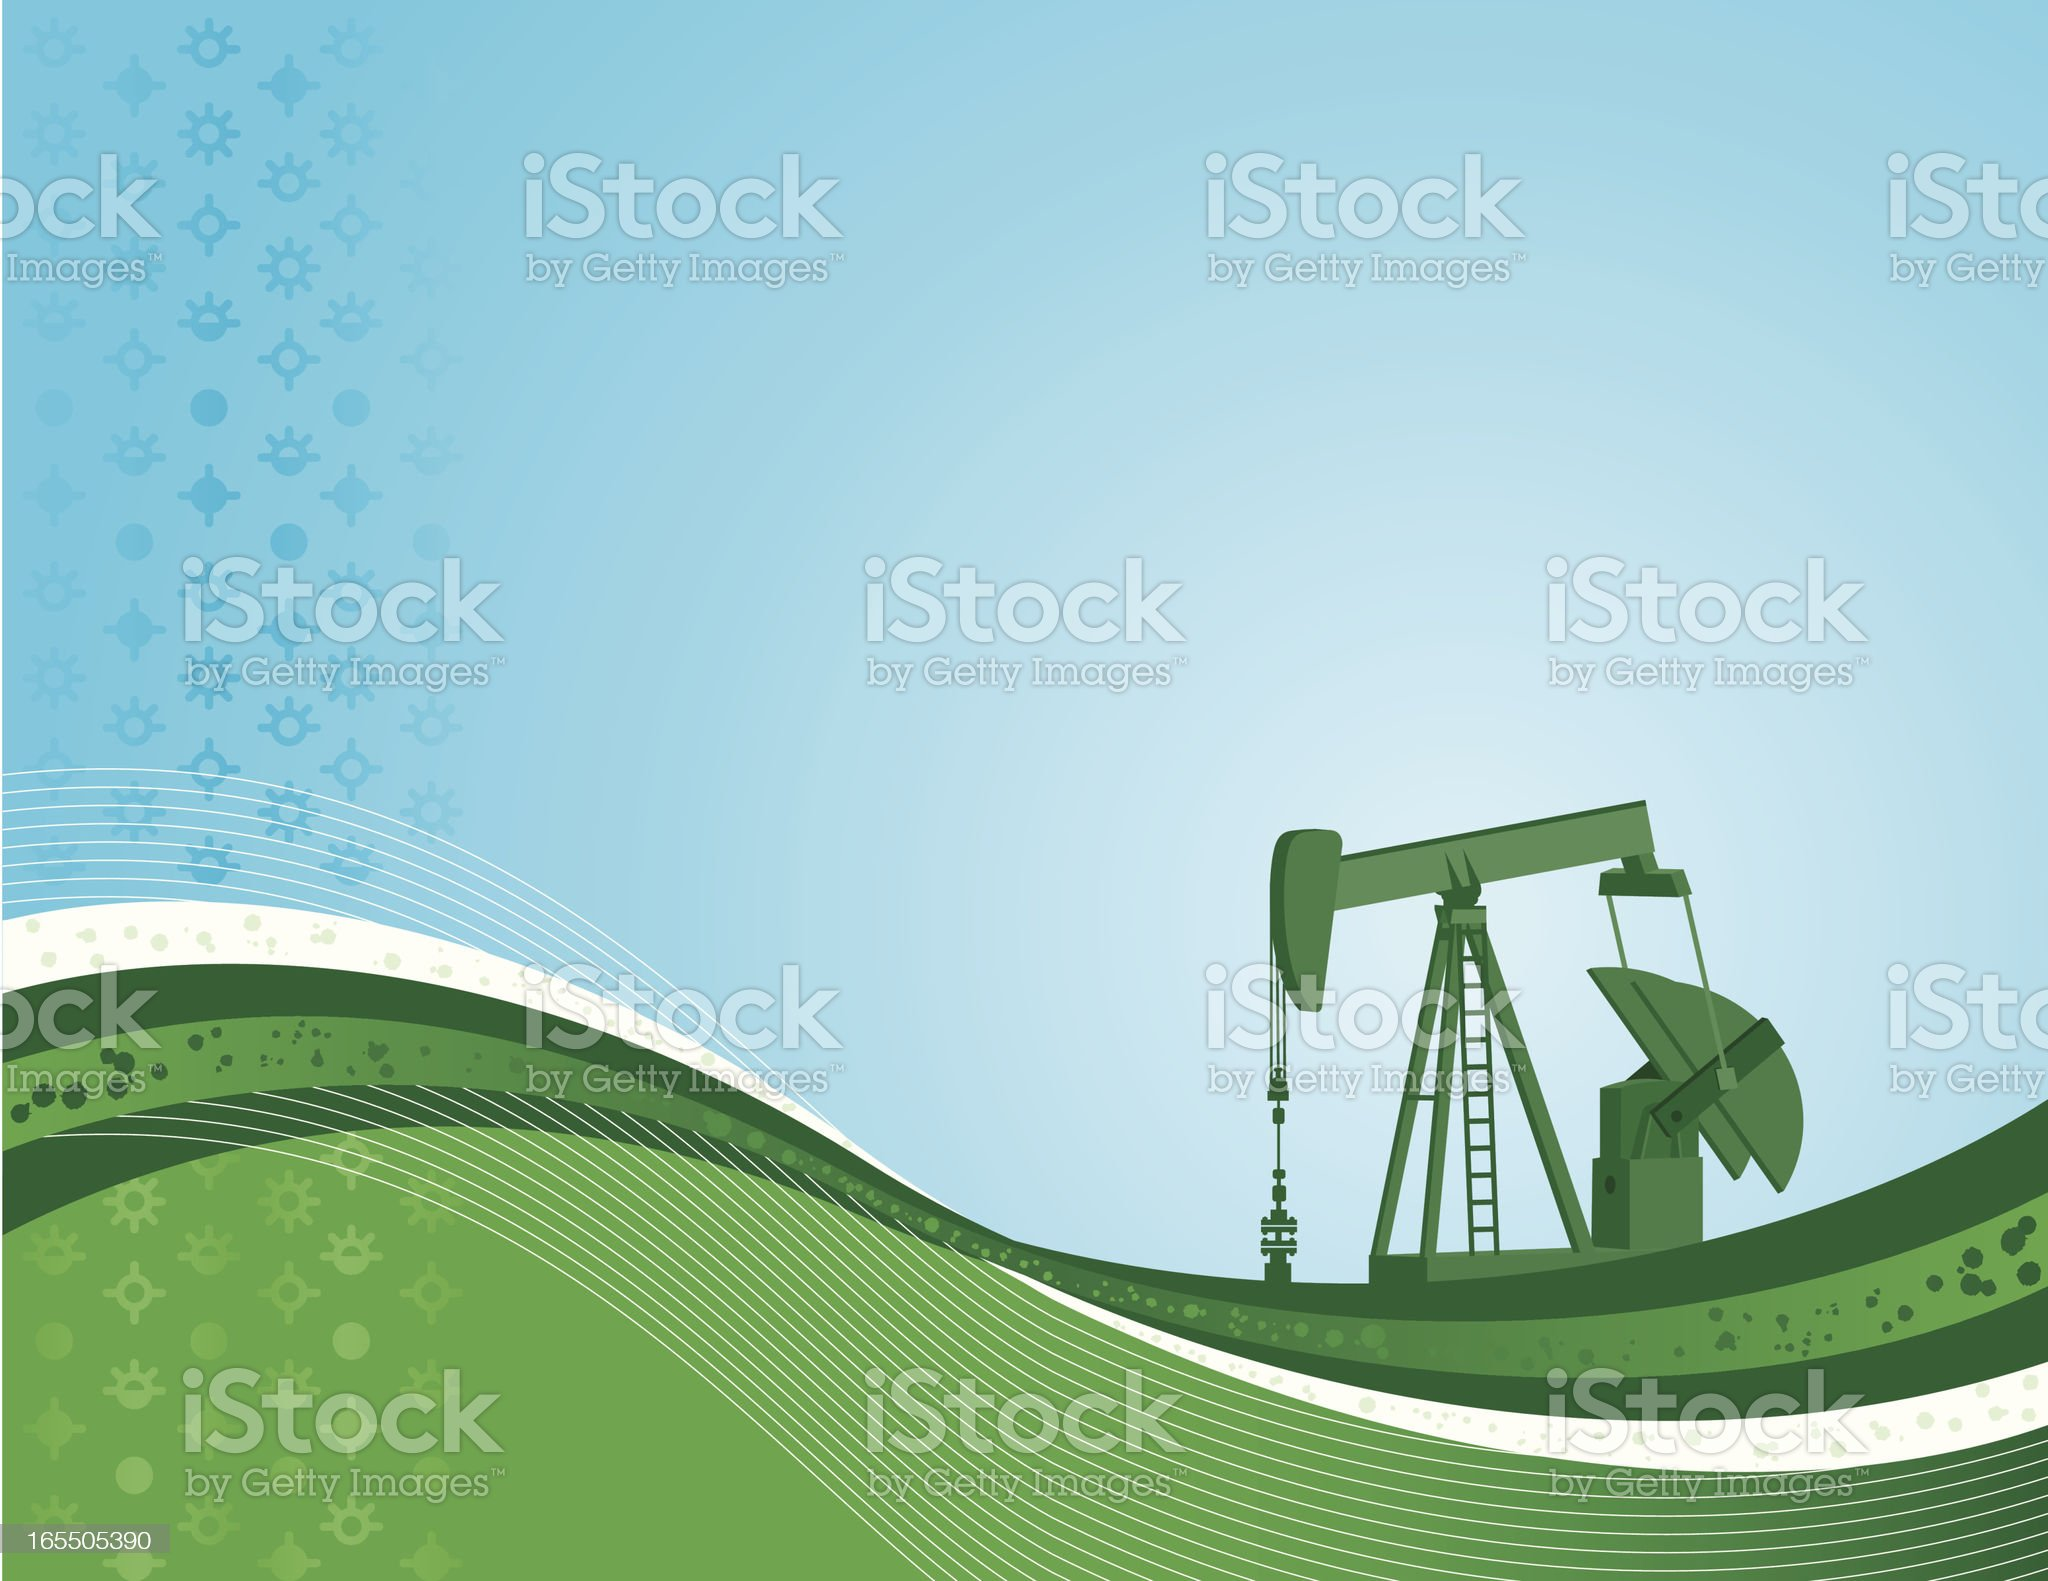 Pumpjack background in blue and green royalty-free stock vector art